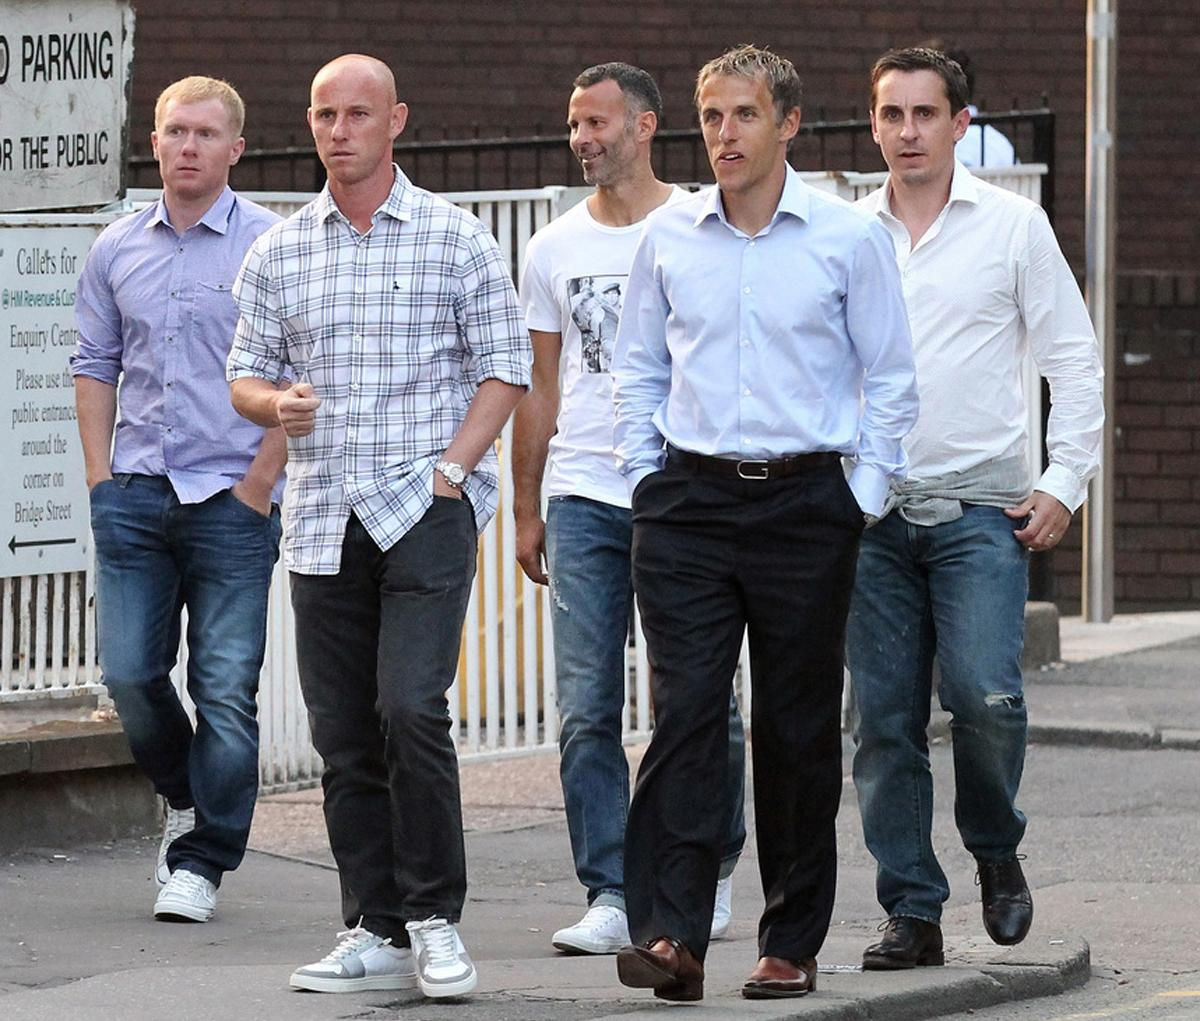 Hotel Football is the brainchild of five Man Utd legends –(from left) Paul Scholes, Nicky Butt, Ryan Giggs, Phil Neville and Gary Neville